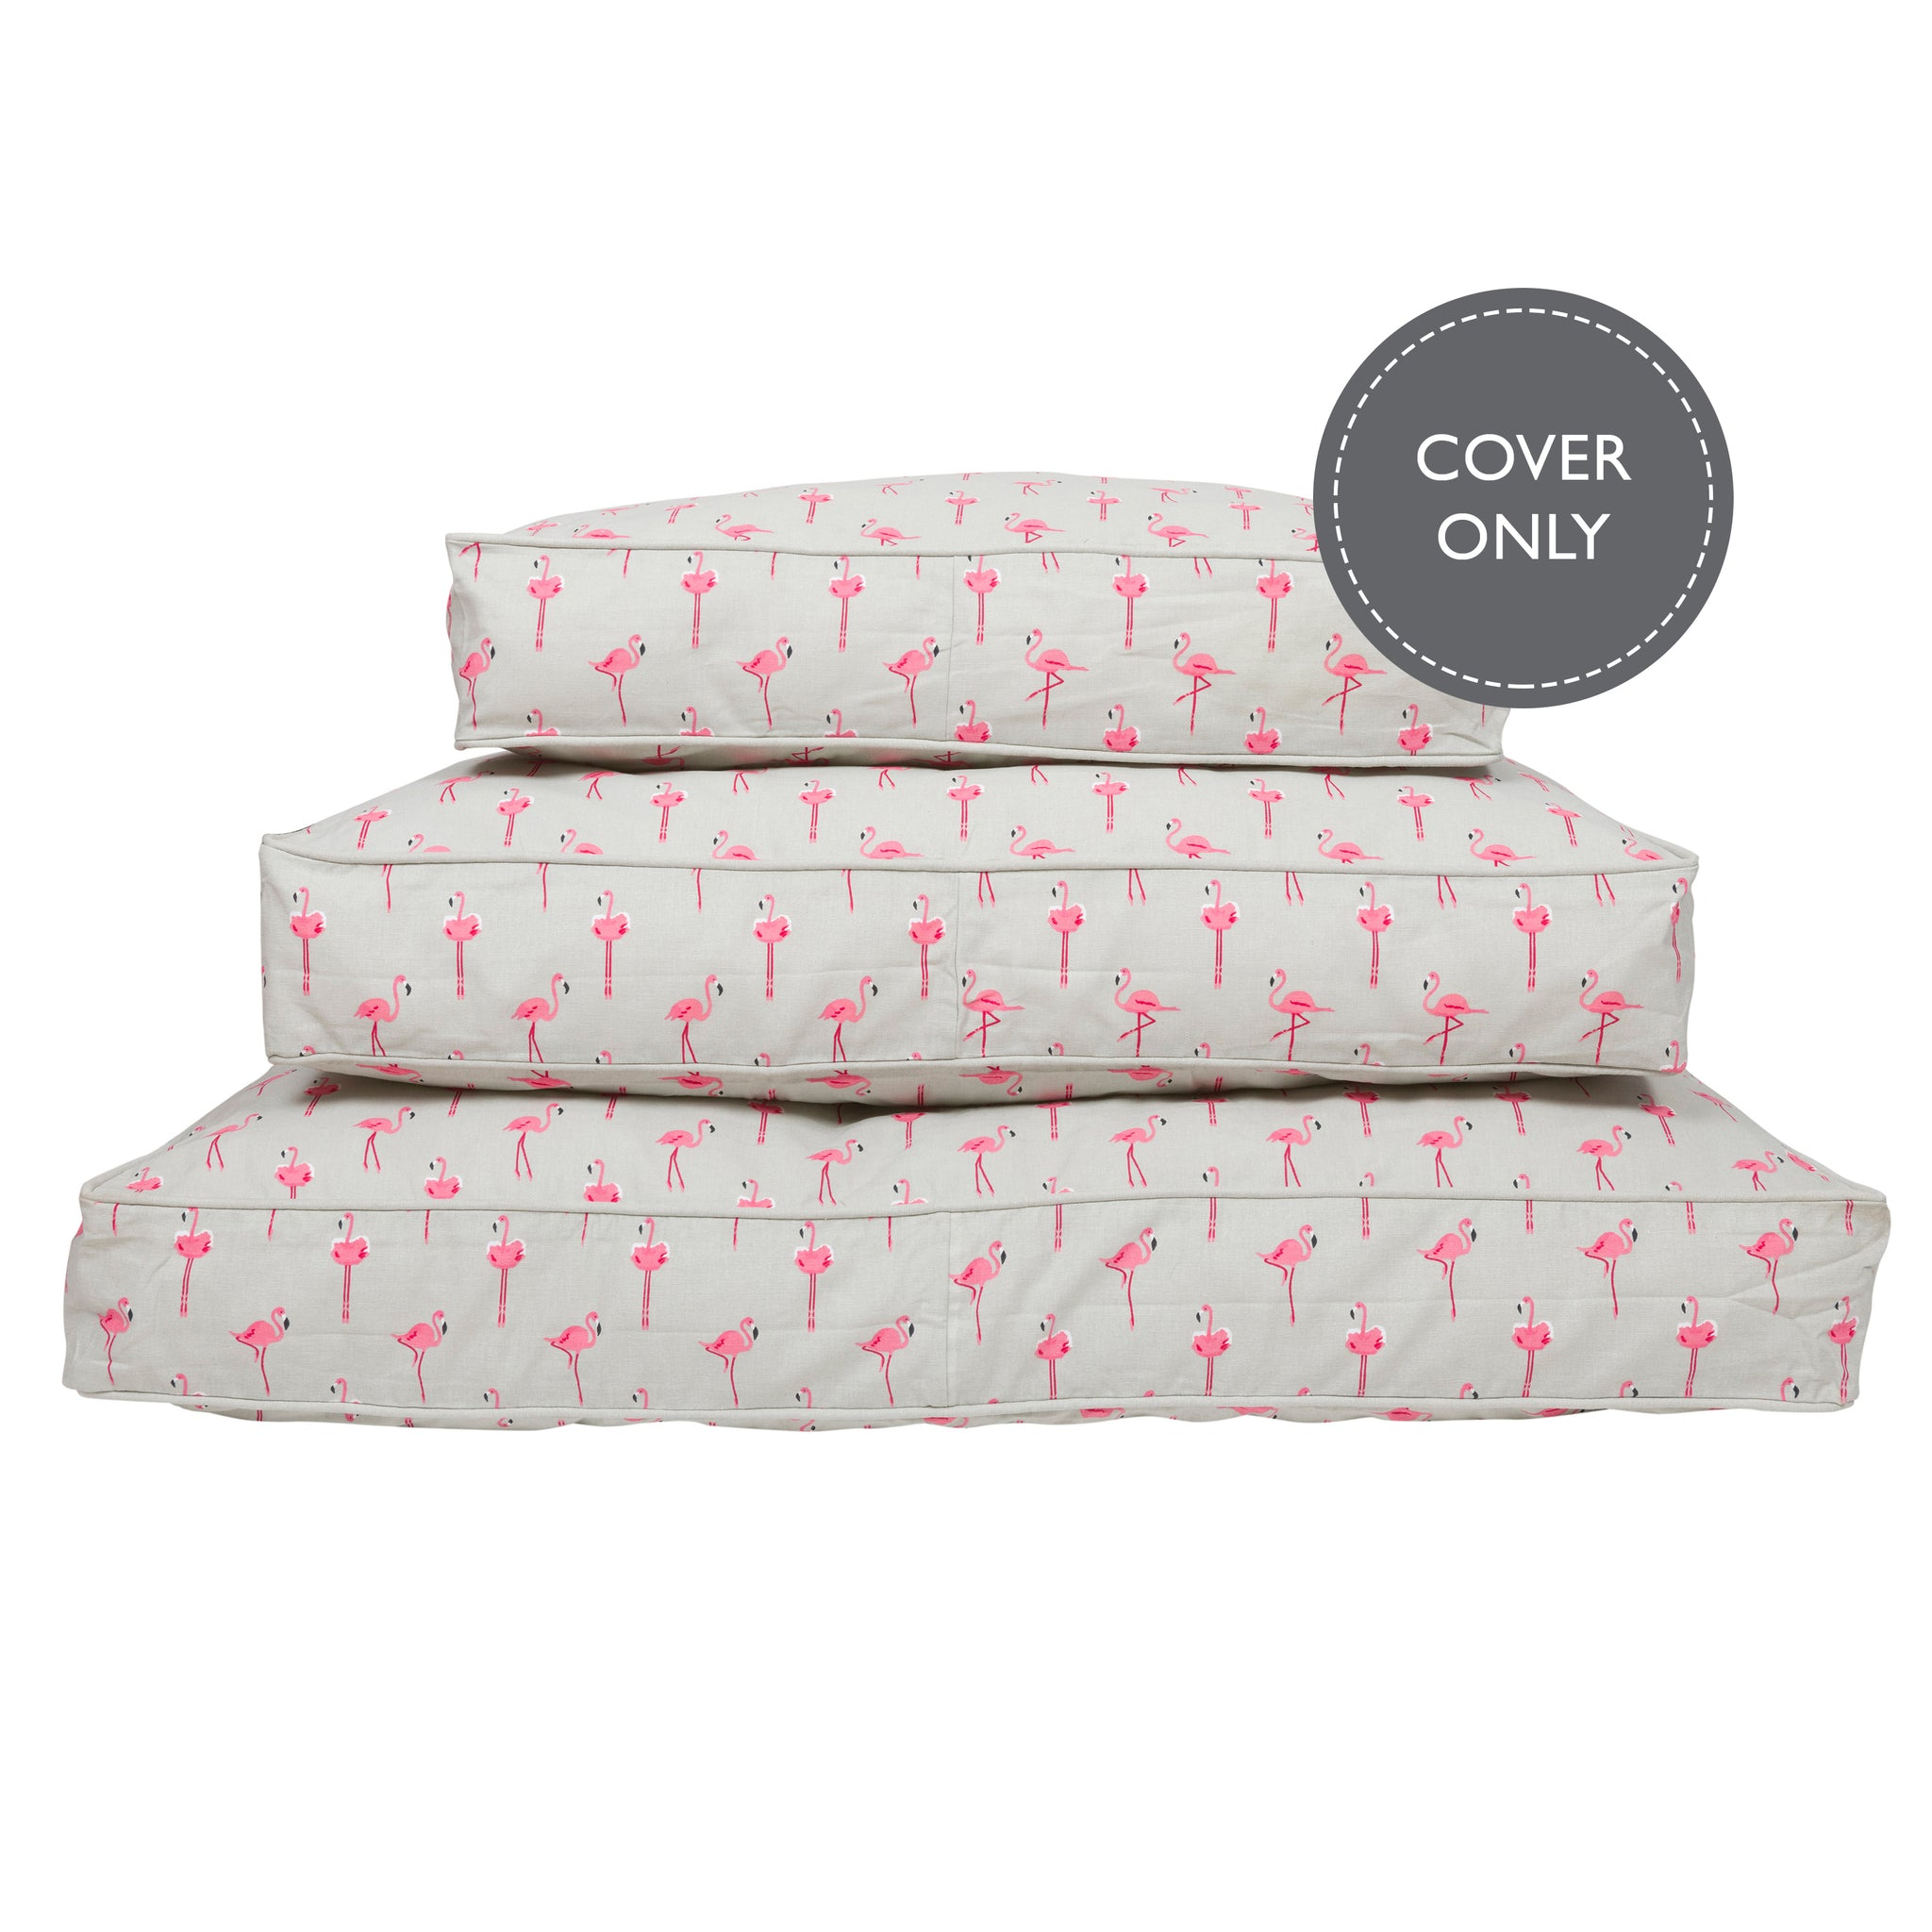 Flamingos Pet Mattress Cover by Sophie Allport